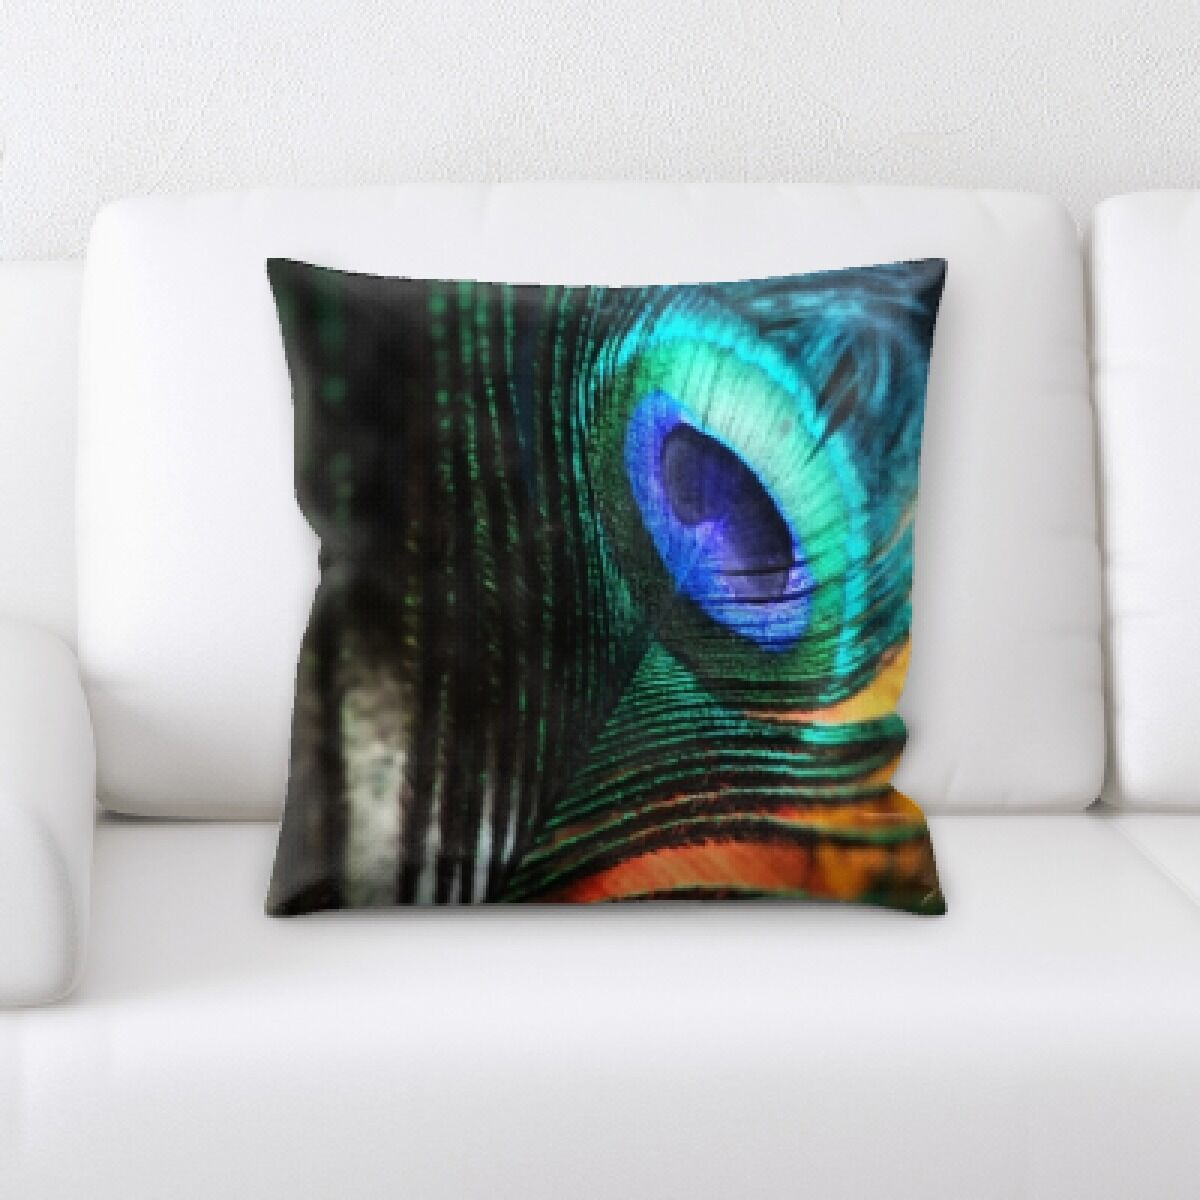 Hollenbeck Peacock Feathers Throw Pillow